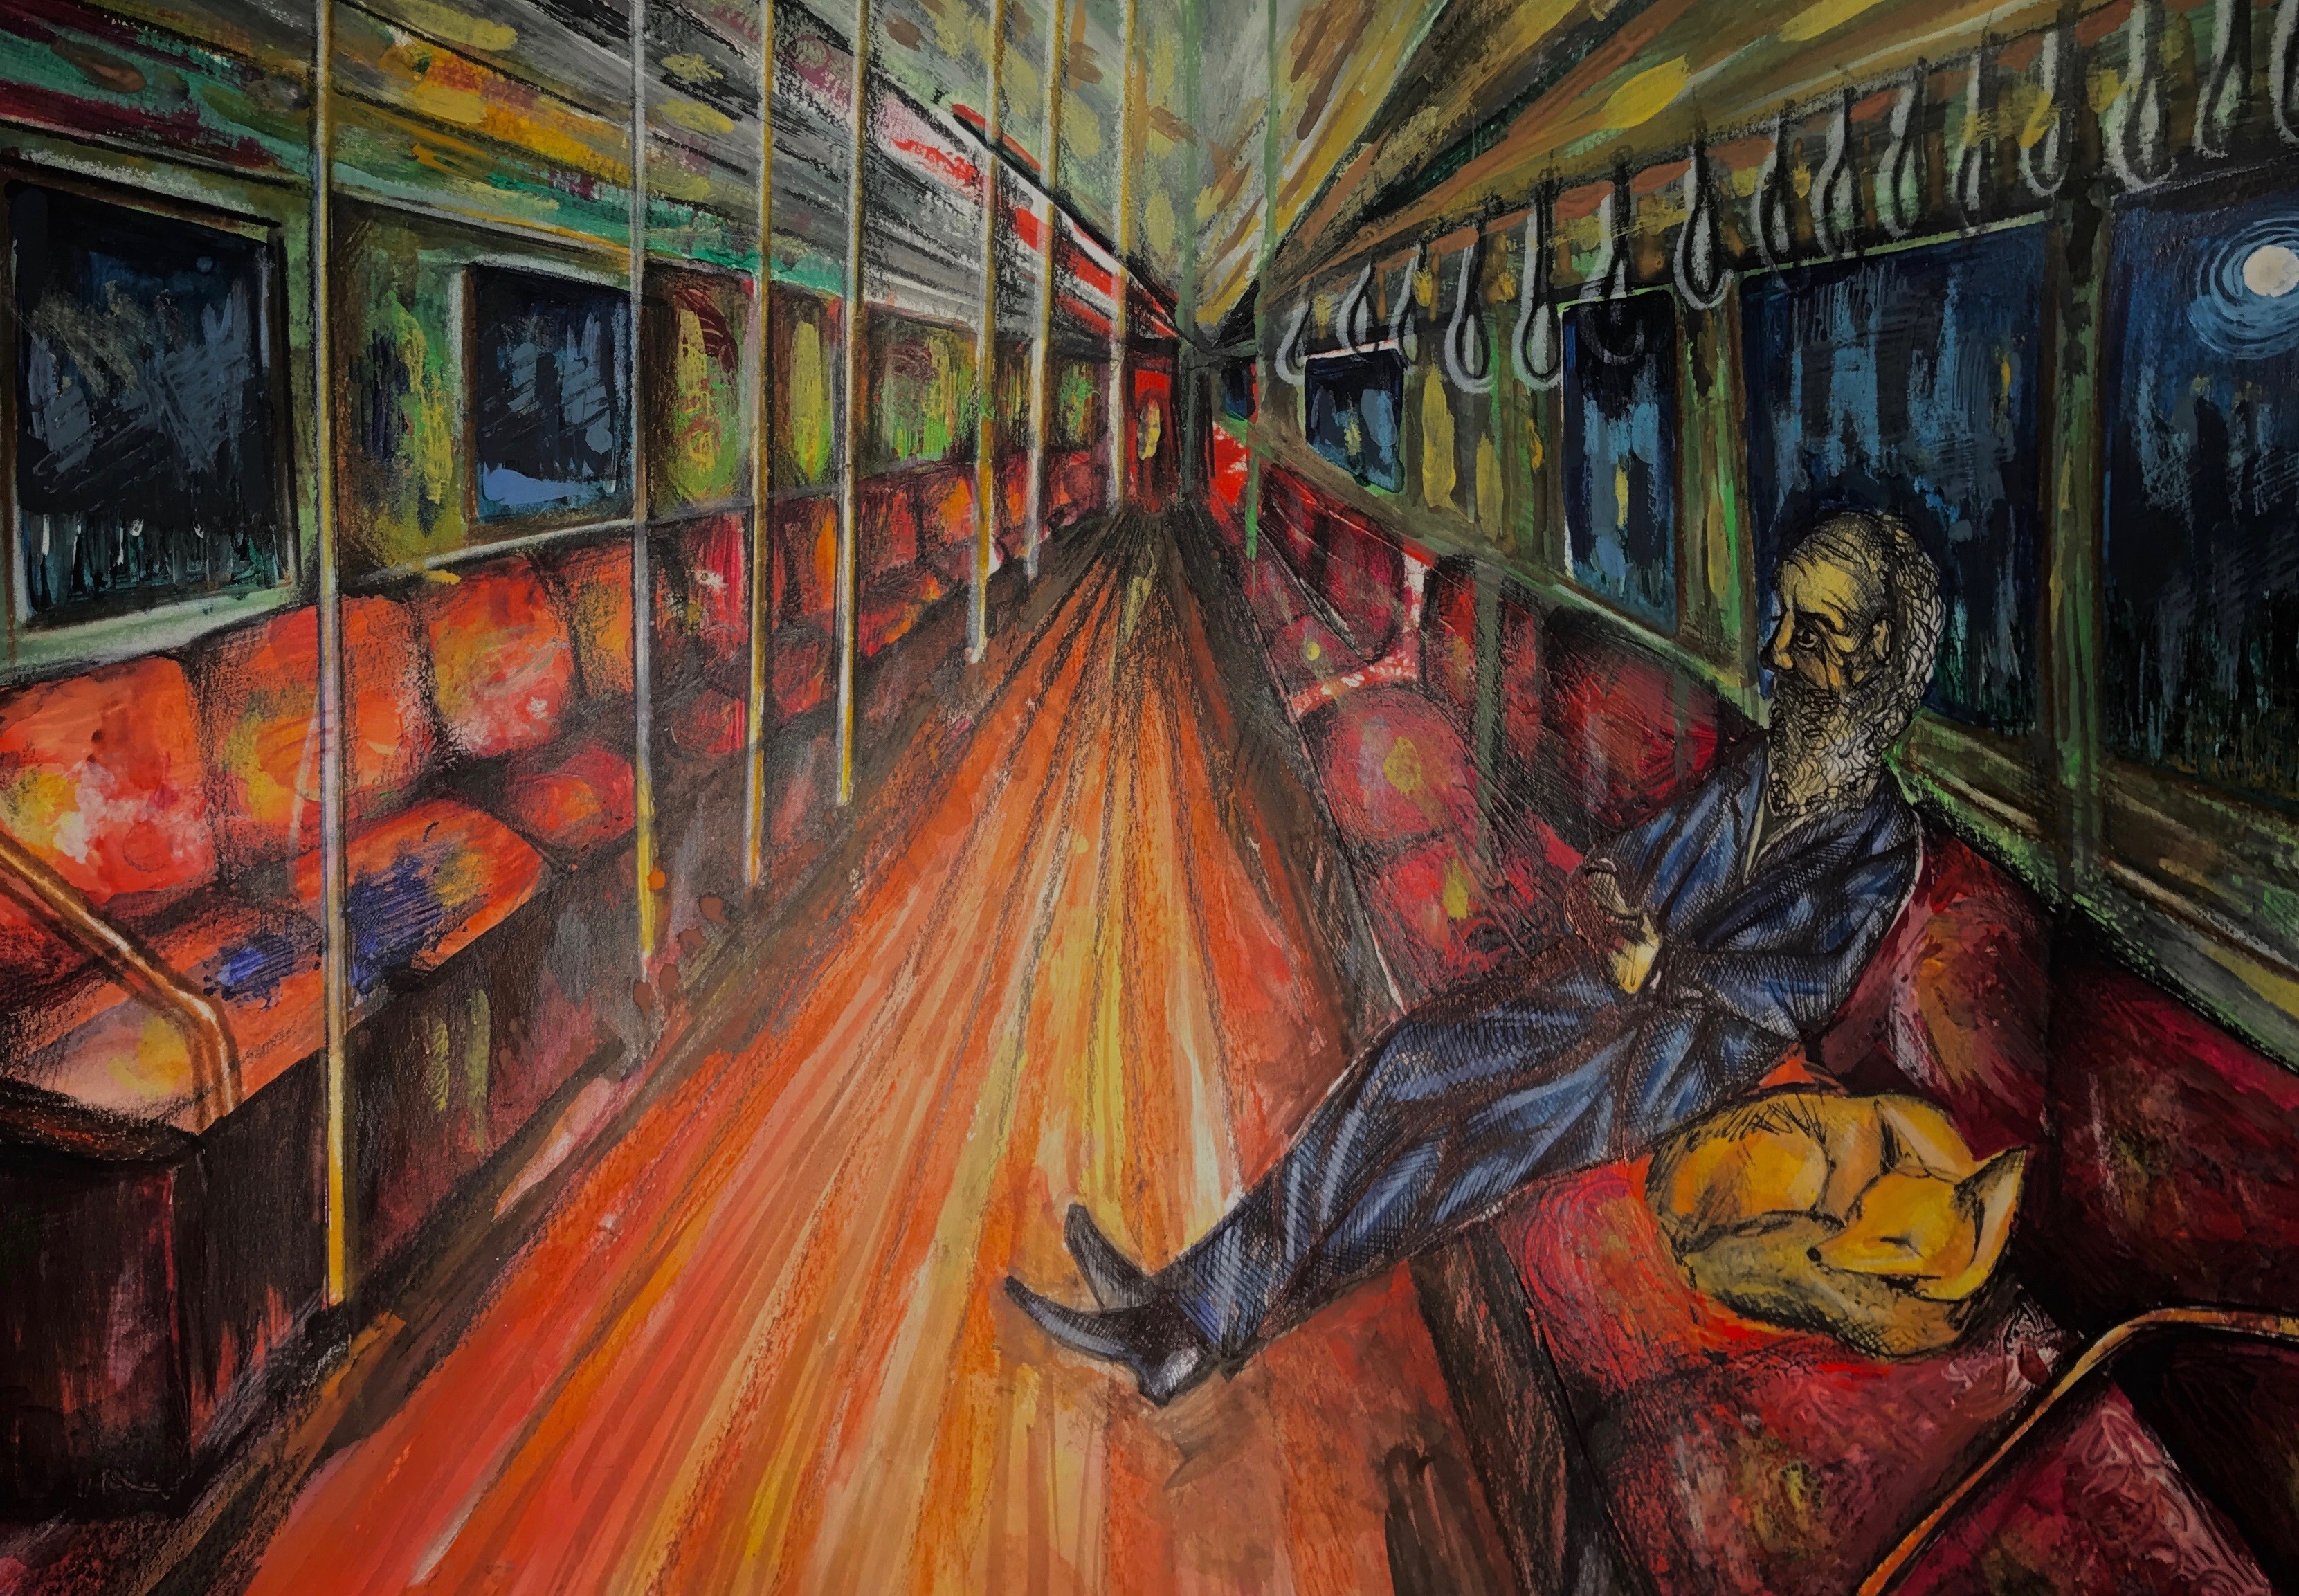 Illustration of a lone passenger sitting on an empty train carriage. Beside them is a sleeping fox curled up.